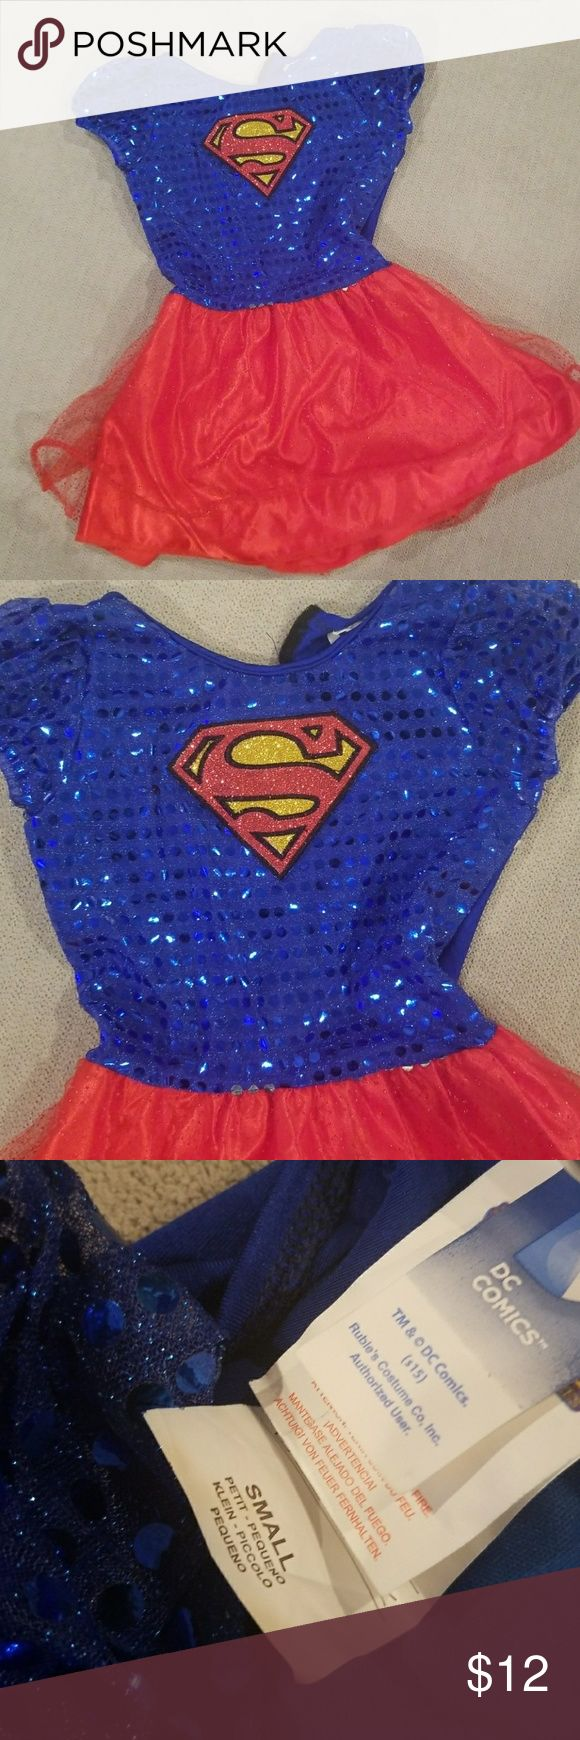 Toddler Supergirl dress Toddler girl Supergirl dress. Sparkle top with toole bottom. Size small- 4/5. DC Costumes Superhero